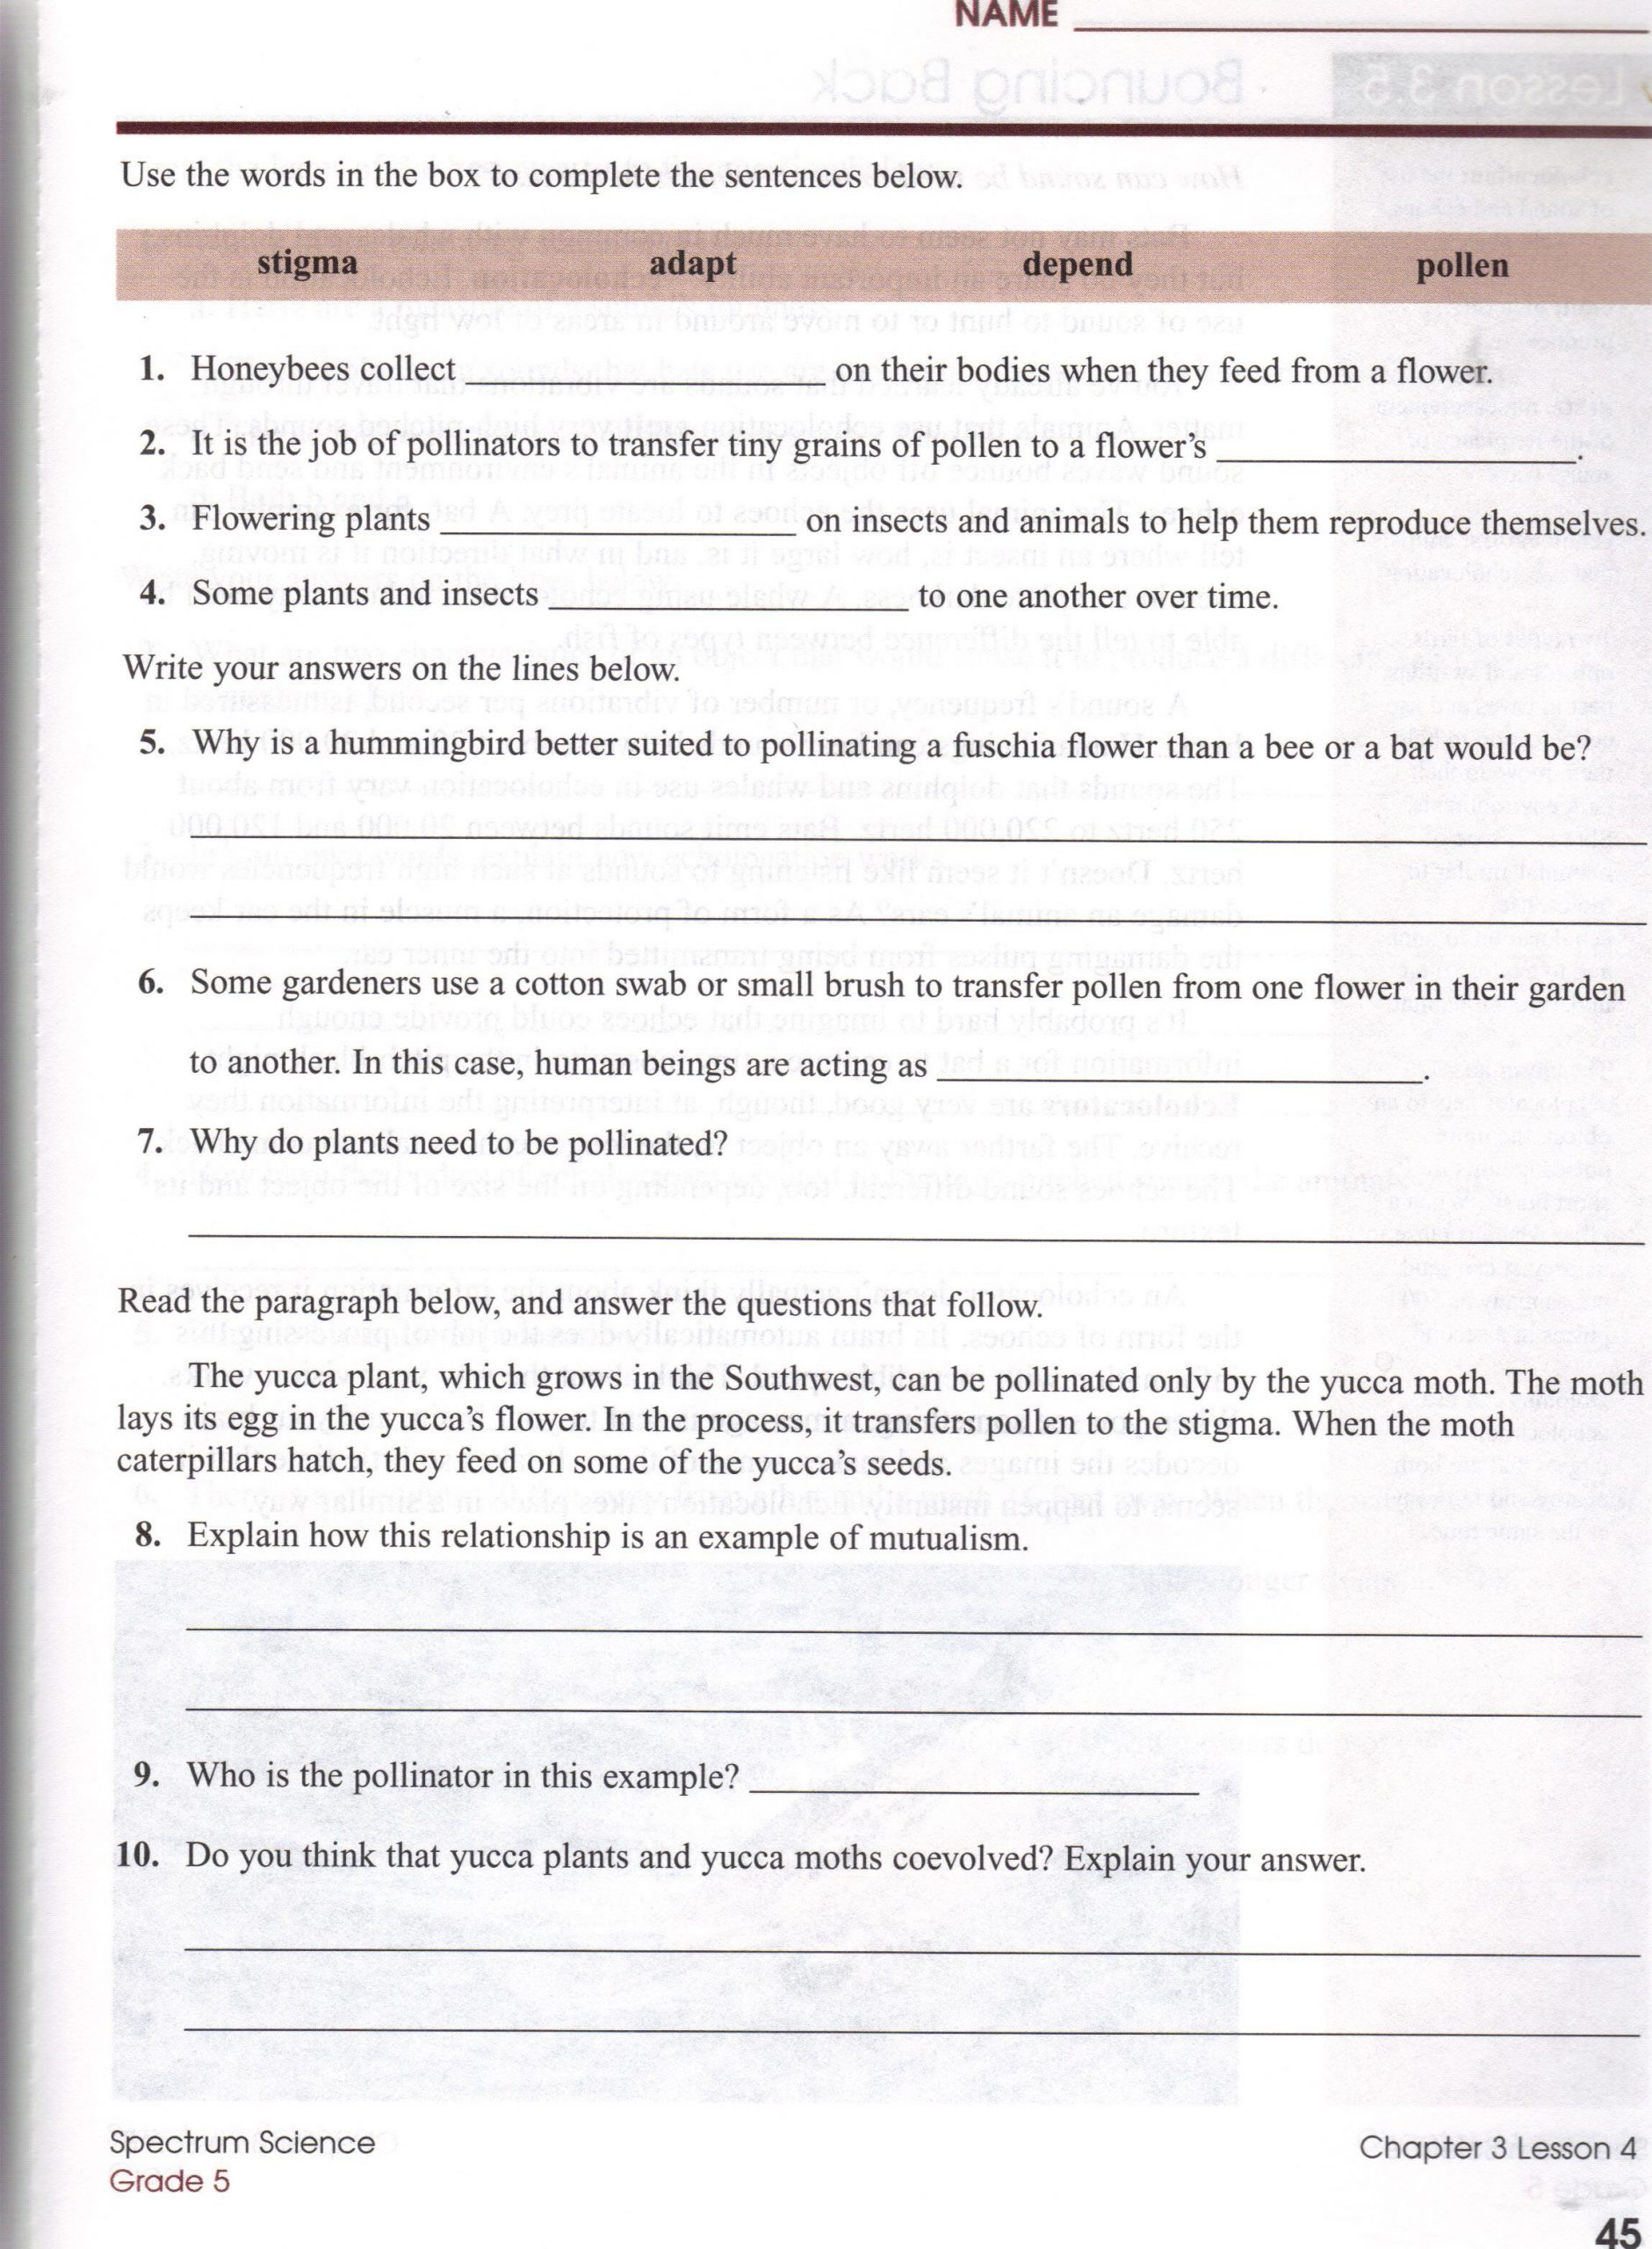 4 4 Biomes Worksheet Answers Biomes at A Glance Worksheet Answers